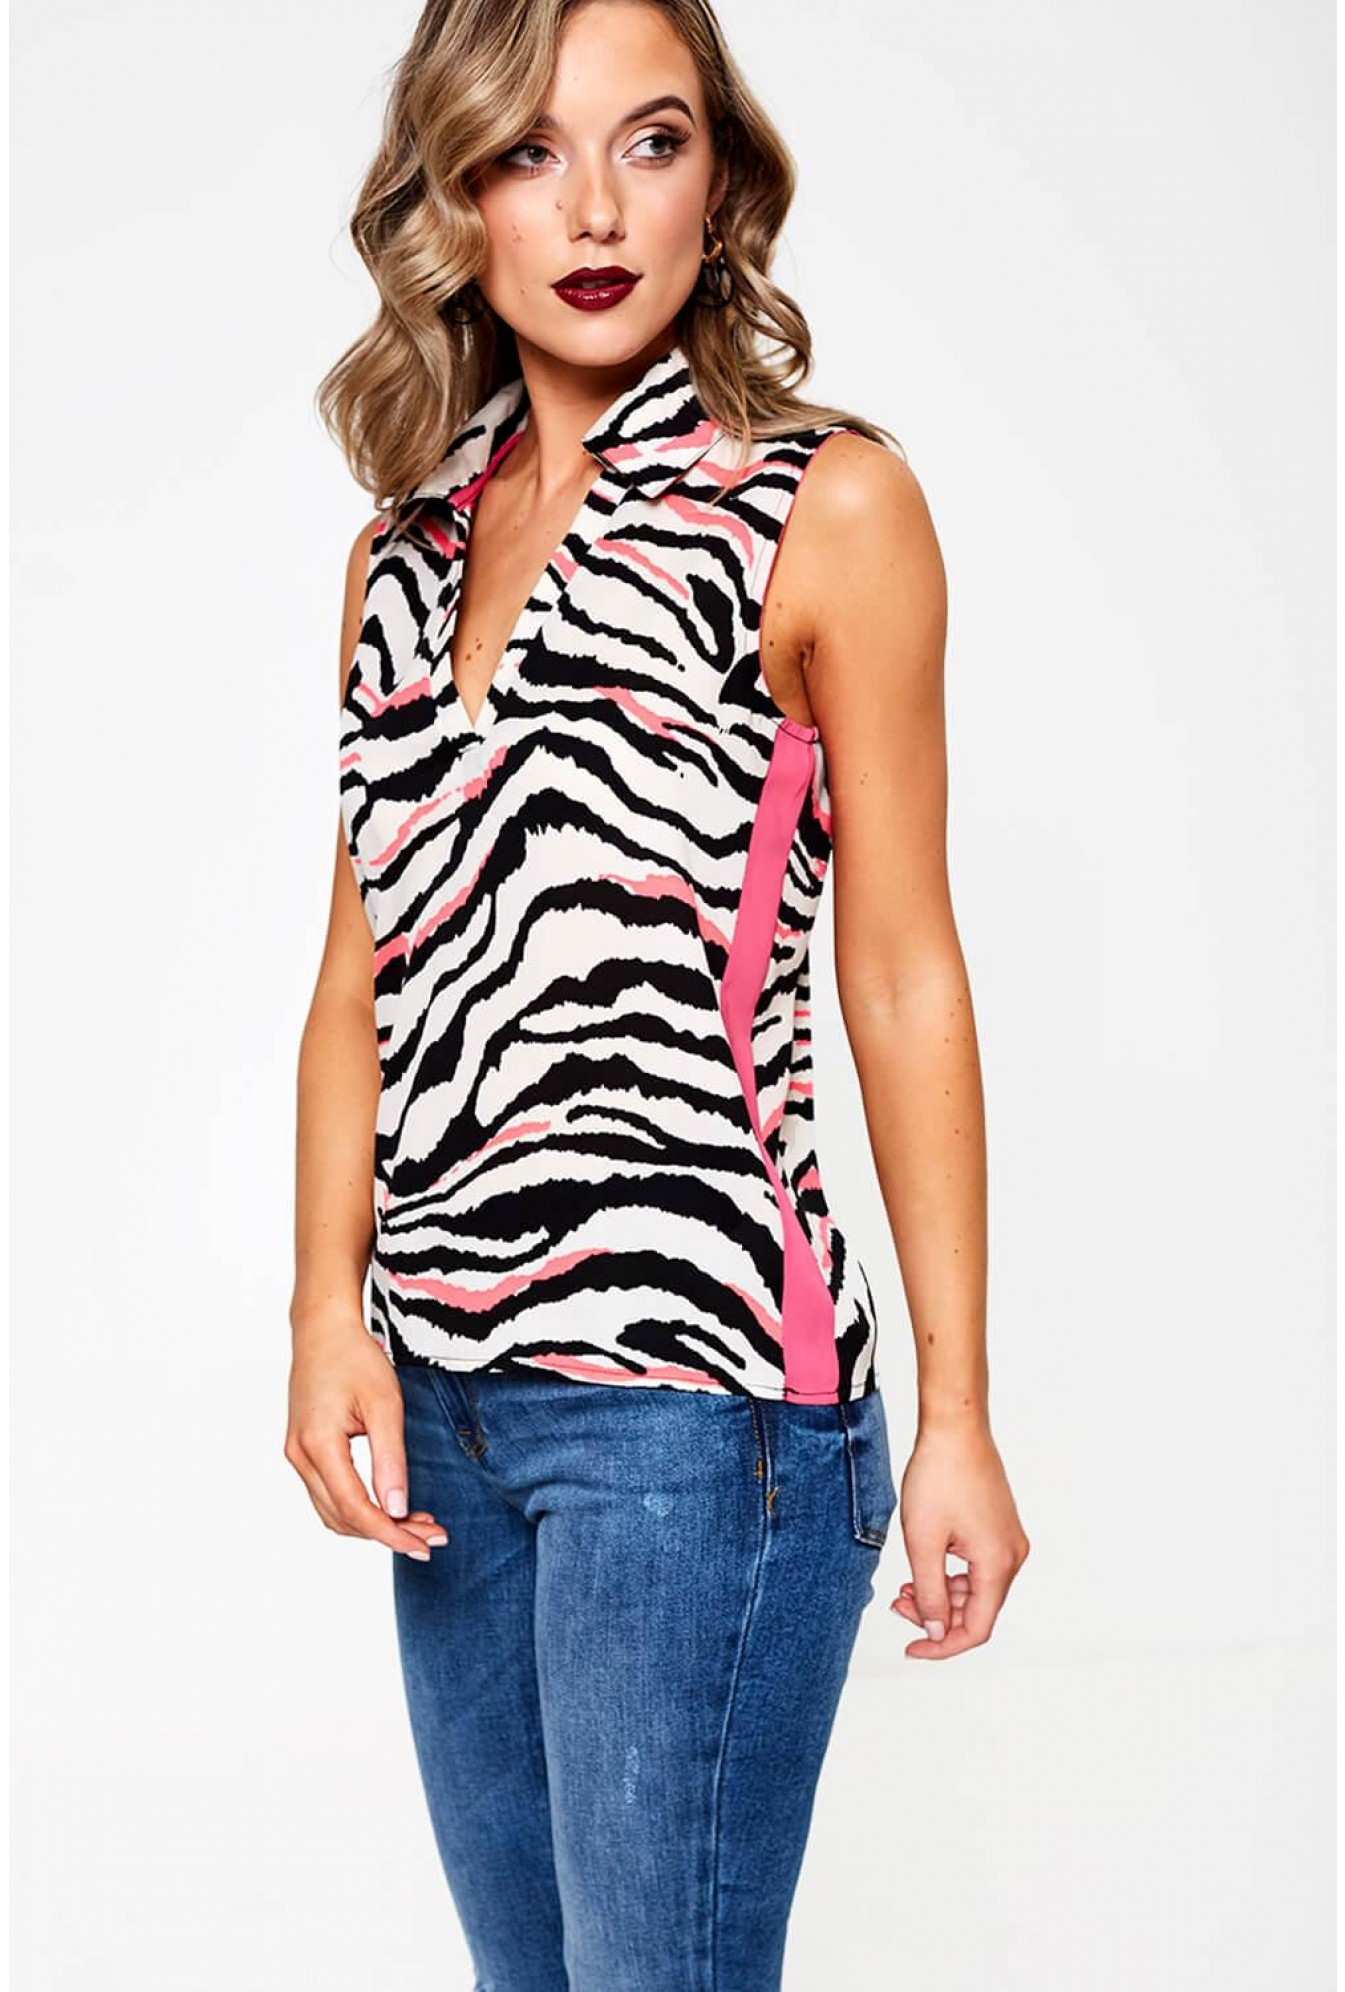 preview of low price sale new photos Elli White Stephanie Sleeveless Top in Pink Zebra Print | iCLOTHING